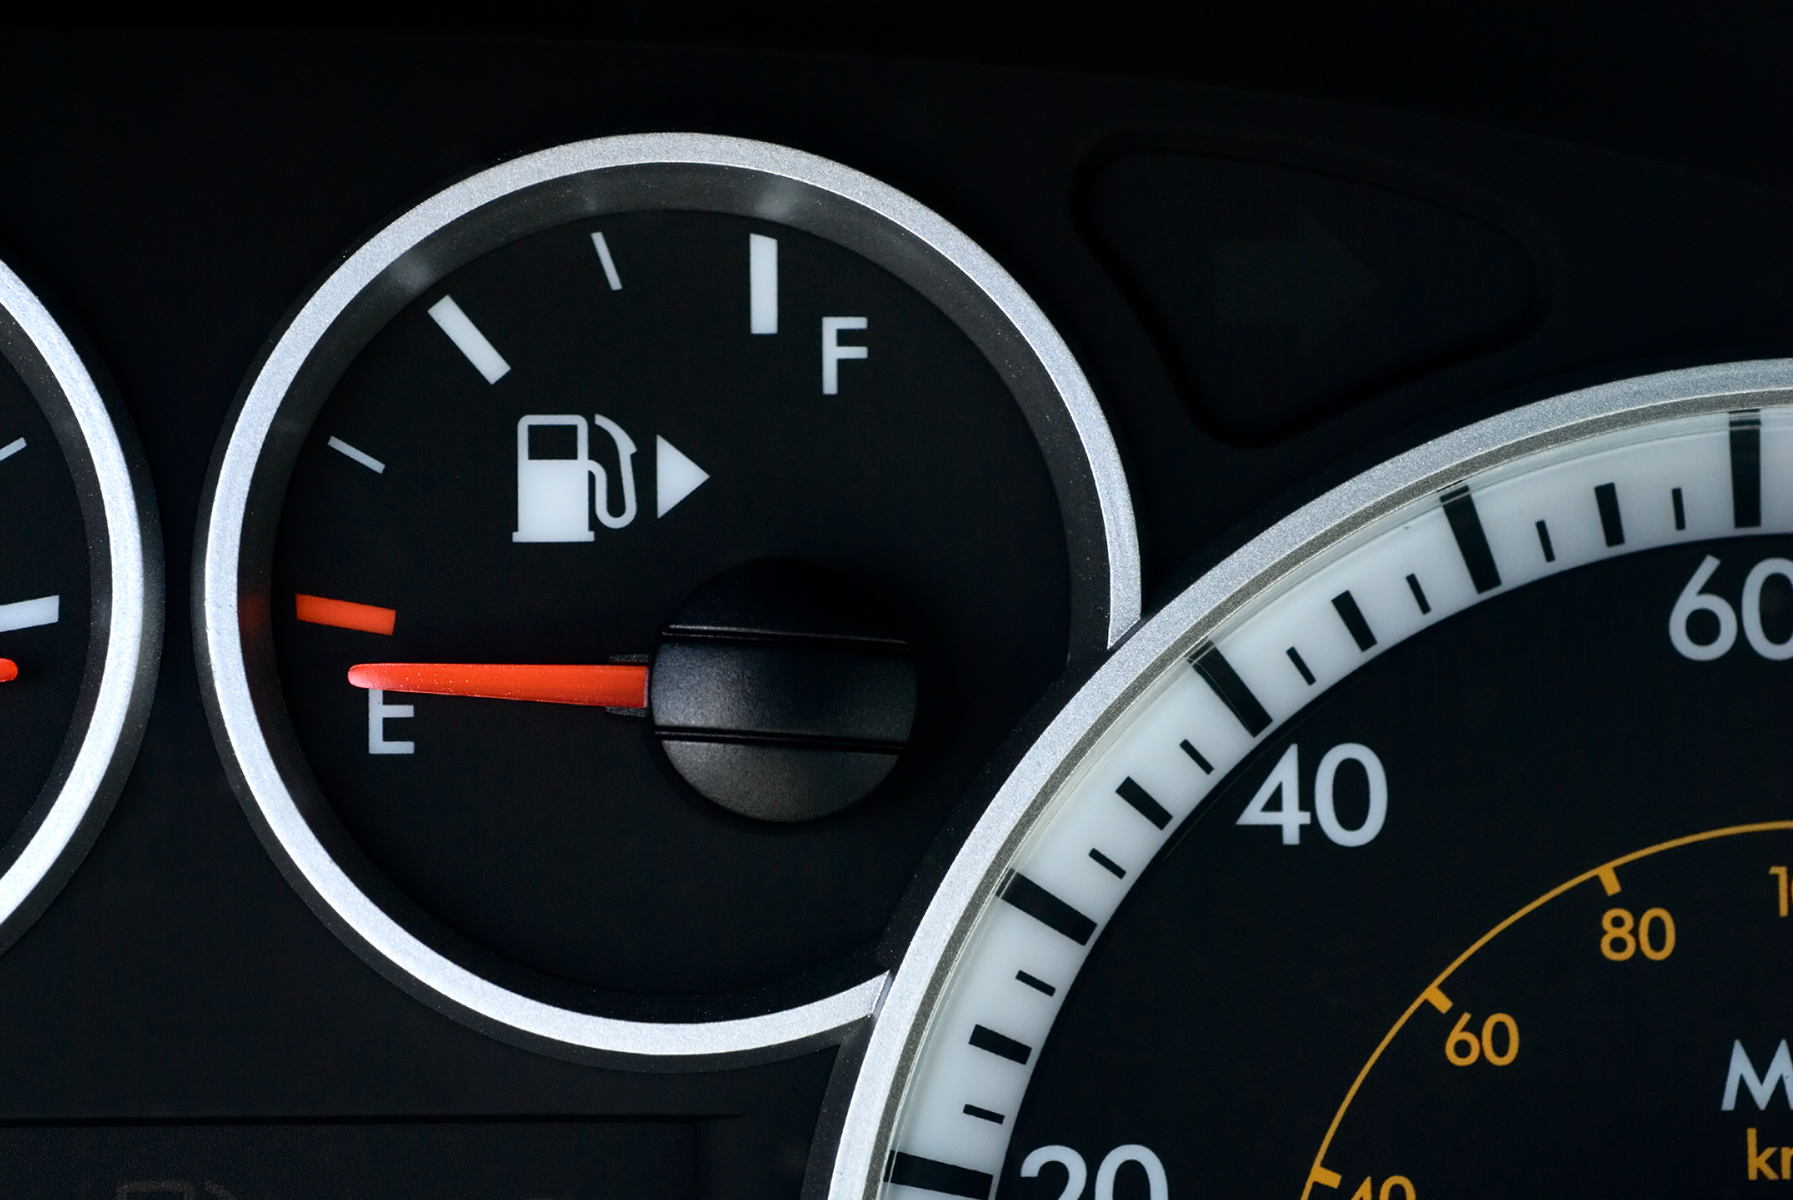 Tips for Improving Fuel Efficiency